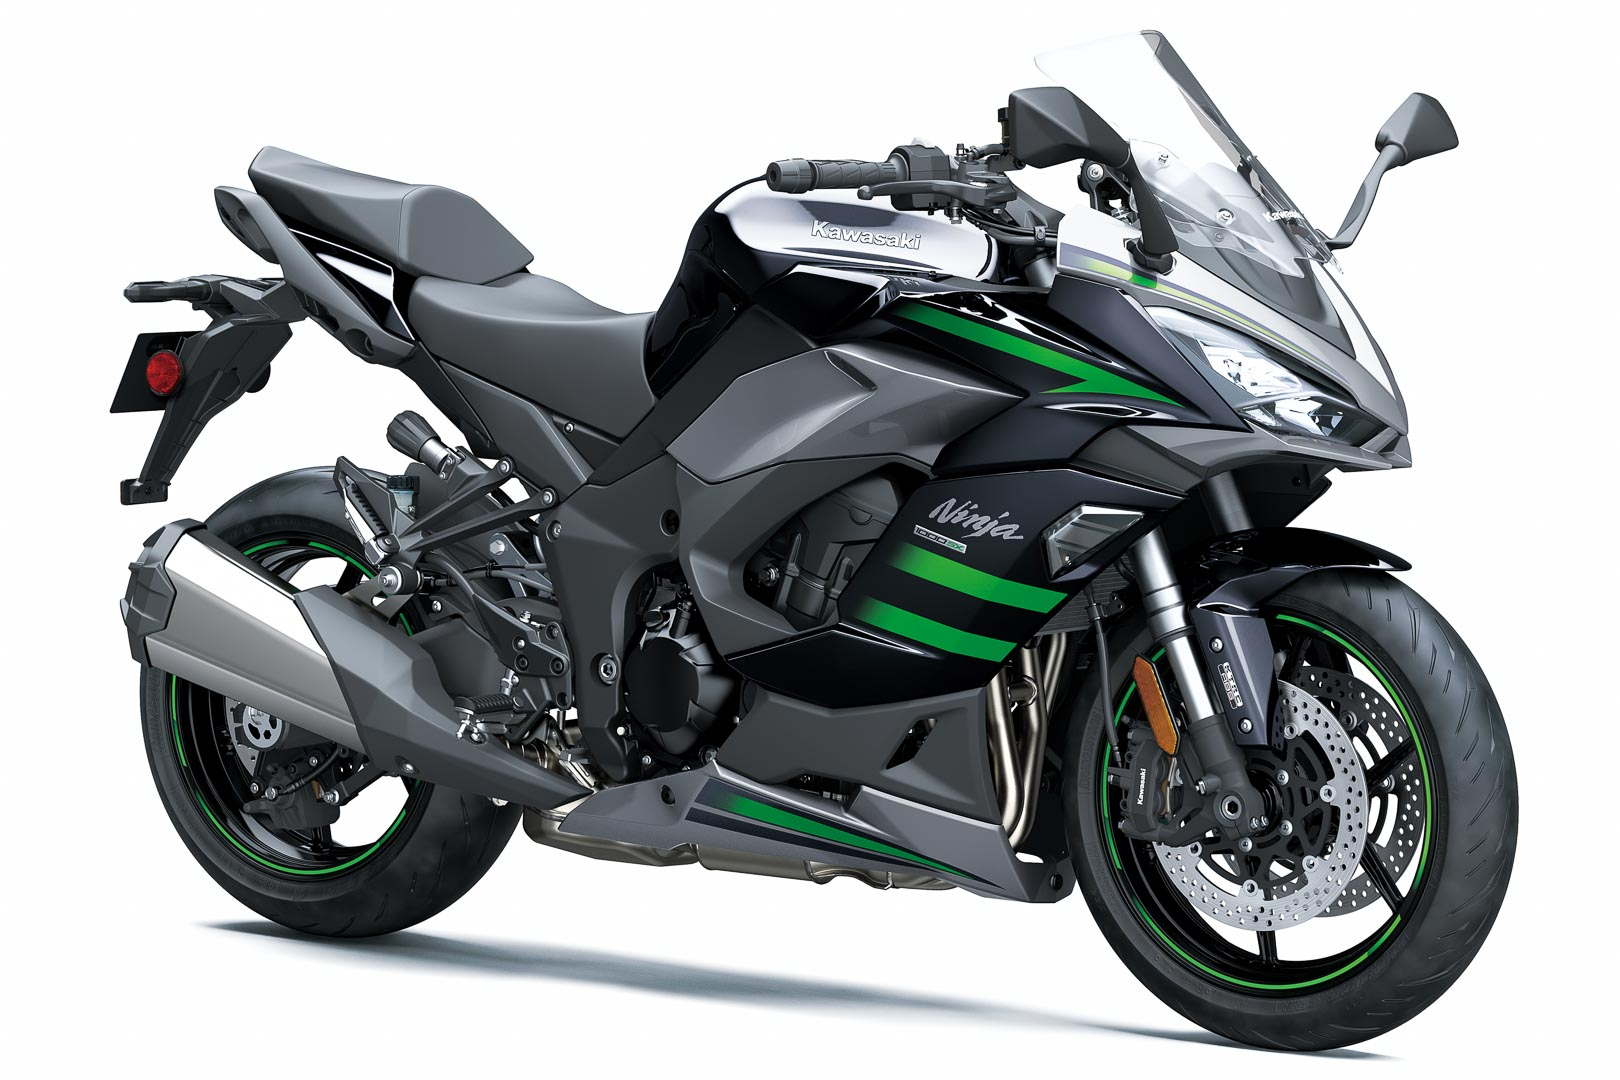 2020 Kawasaki Ninja 1000SX First Look - MSRP